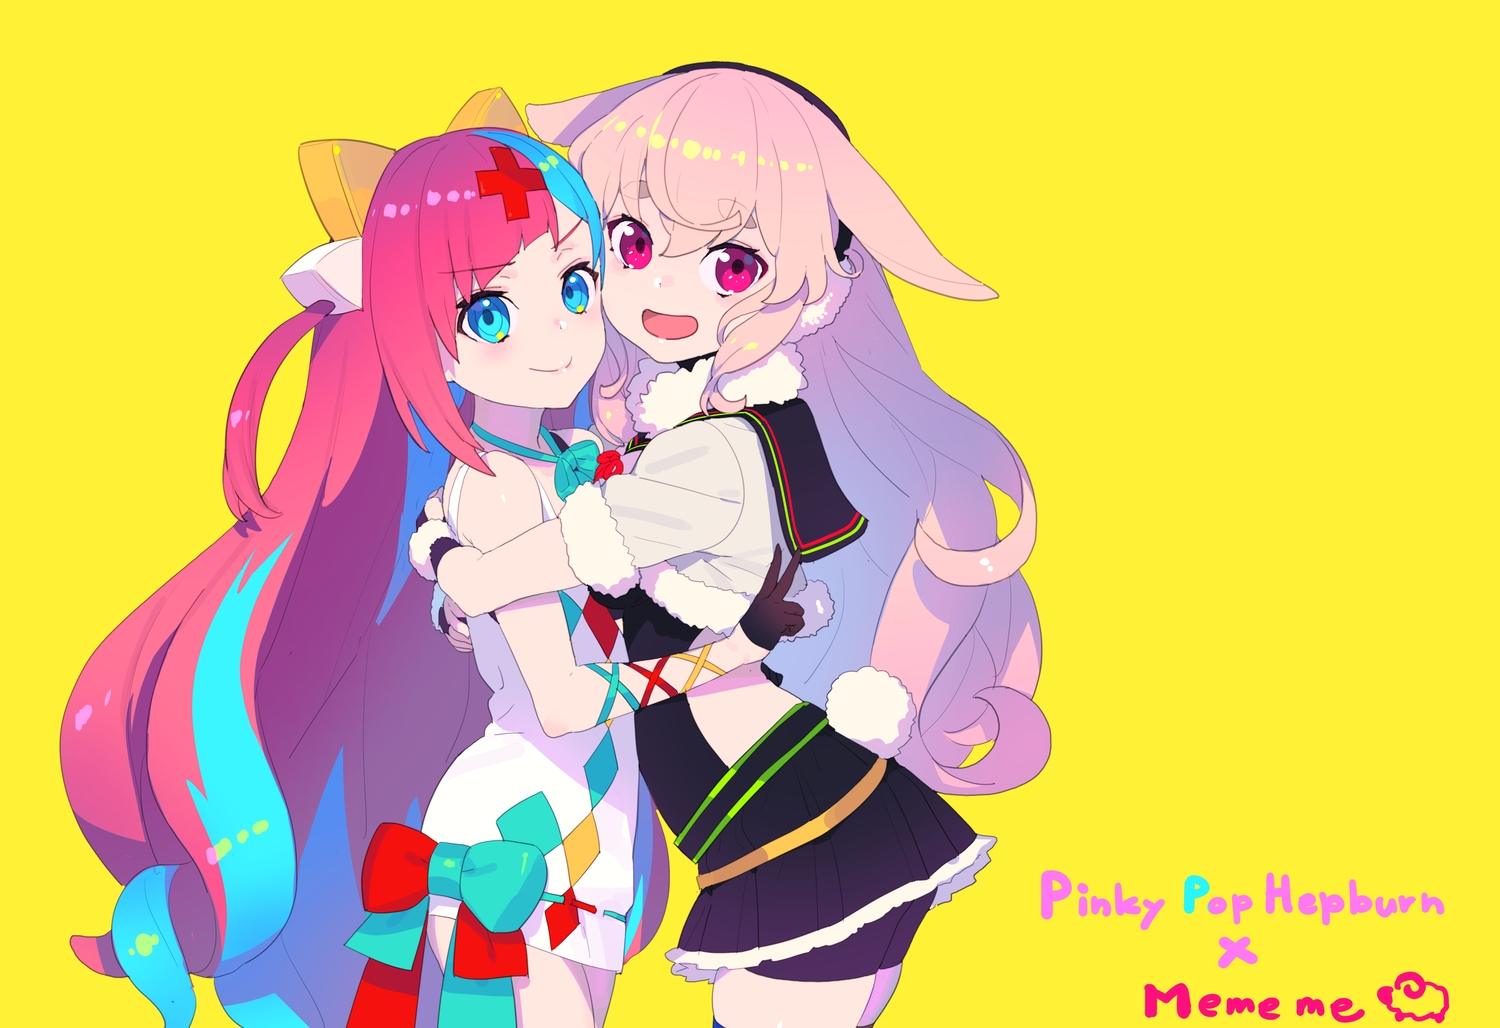 2girls animal_ears aqua_eyes bike_shorts bow bunny_ears bunnygirl dress earmuffs gloves hug .live long_hair mokota_mememe nagisa_kurousagi pink_eyes pink_hair pinky_pop_hepburn shorts skirt tail the_moon_studio yellow